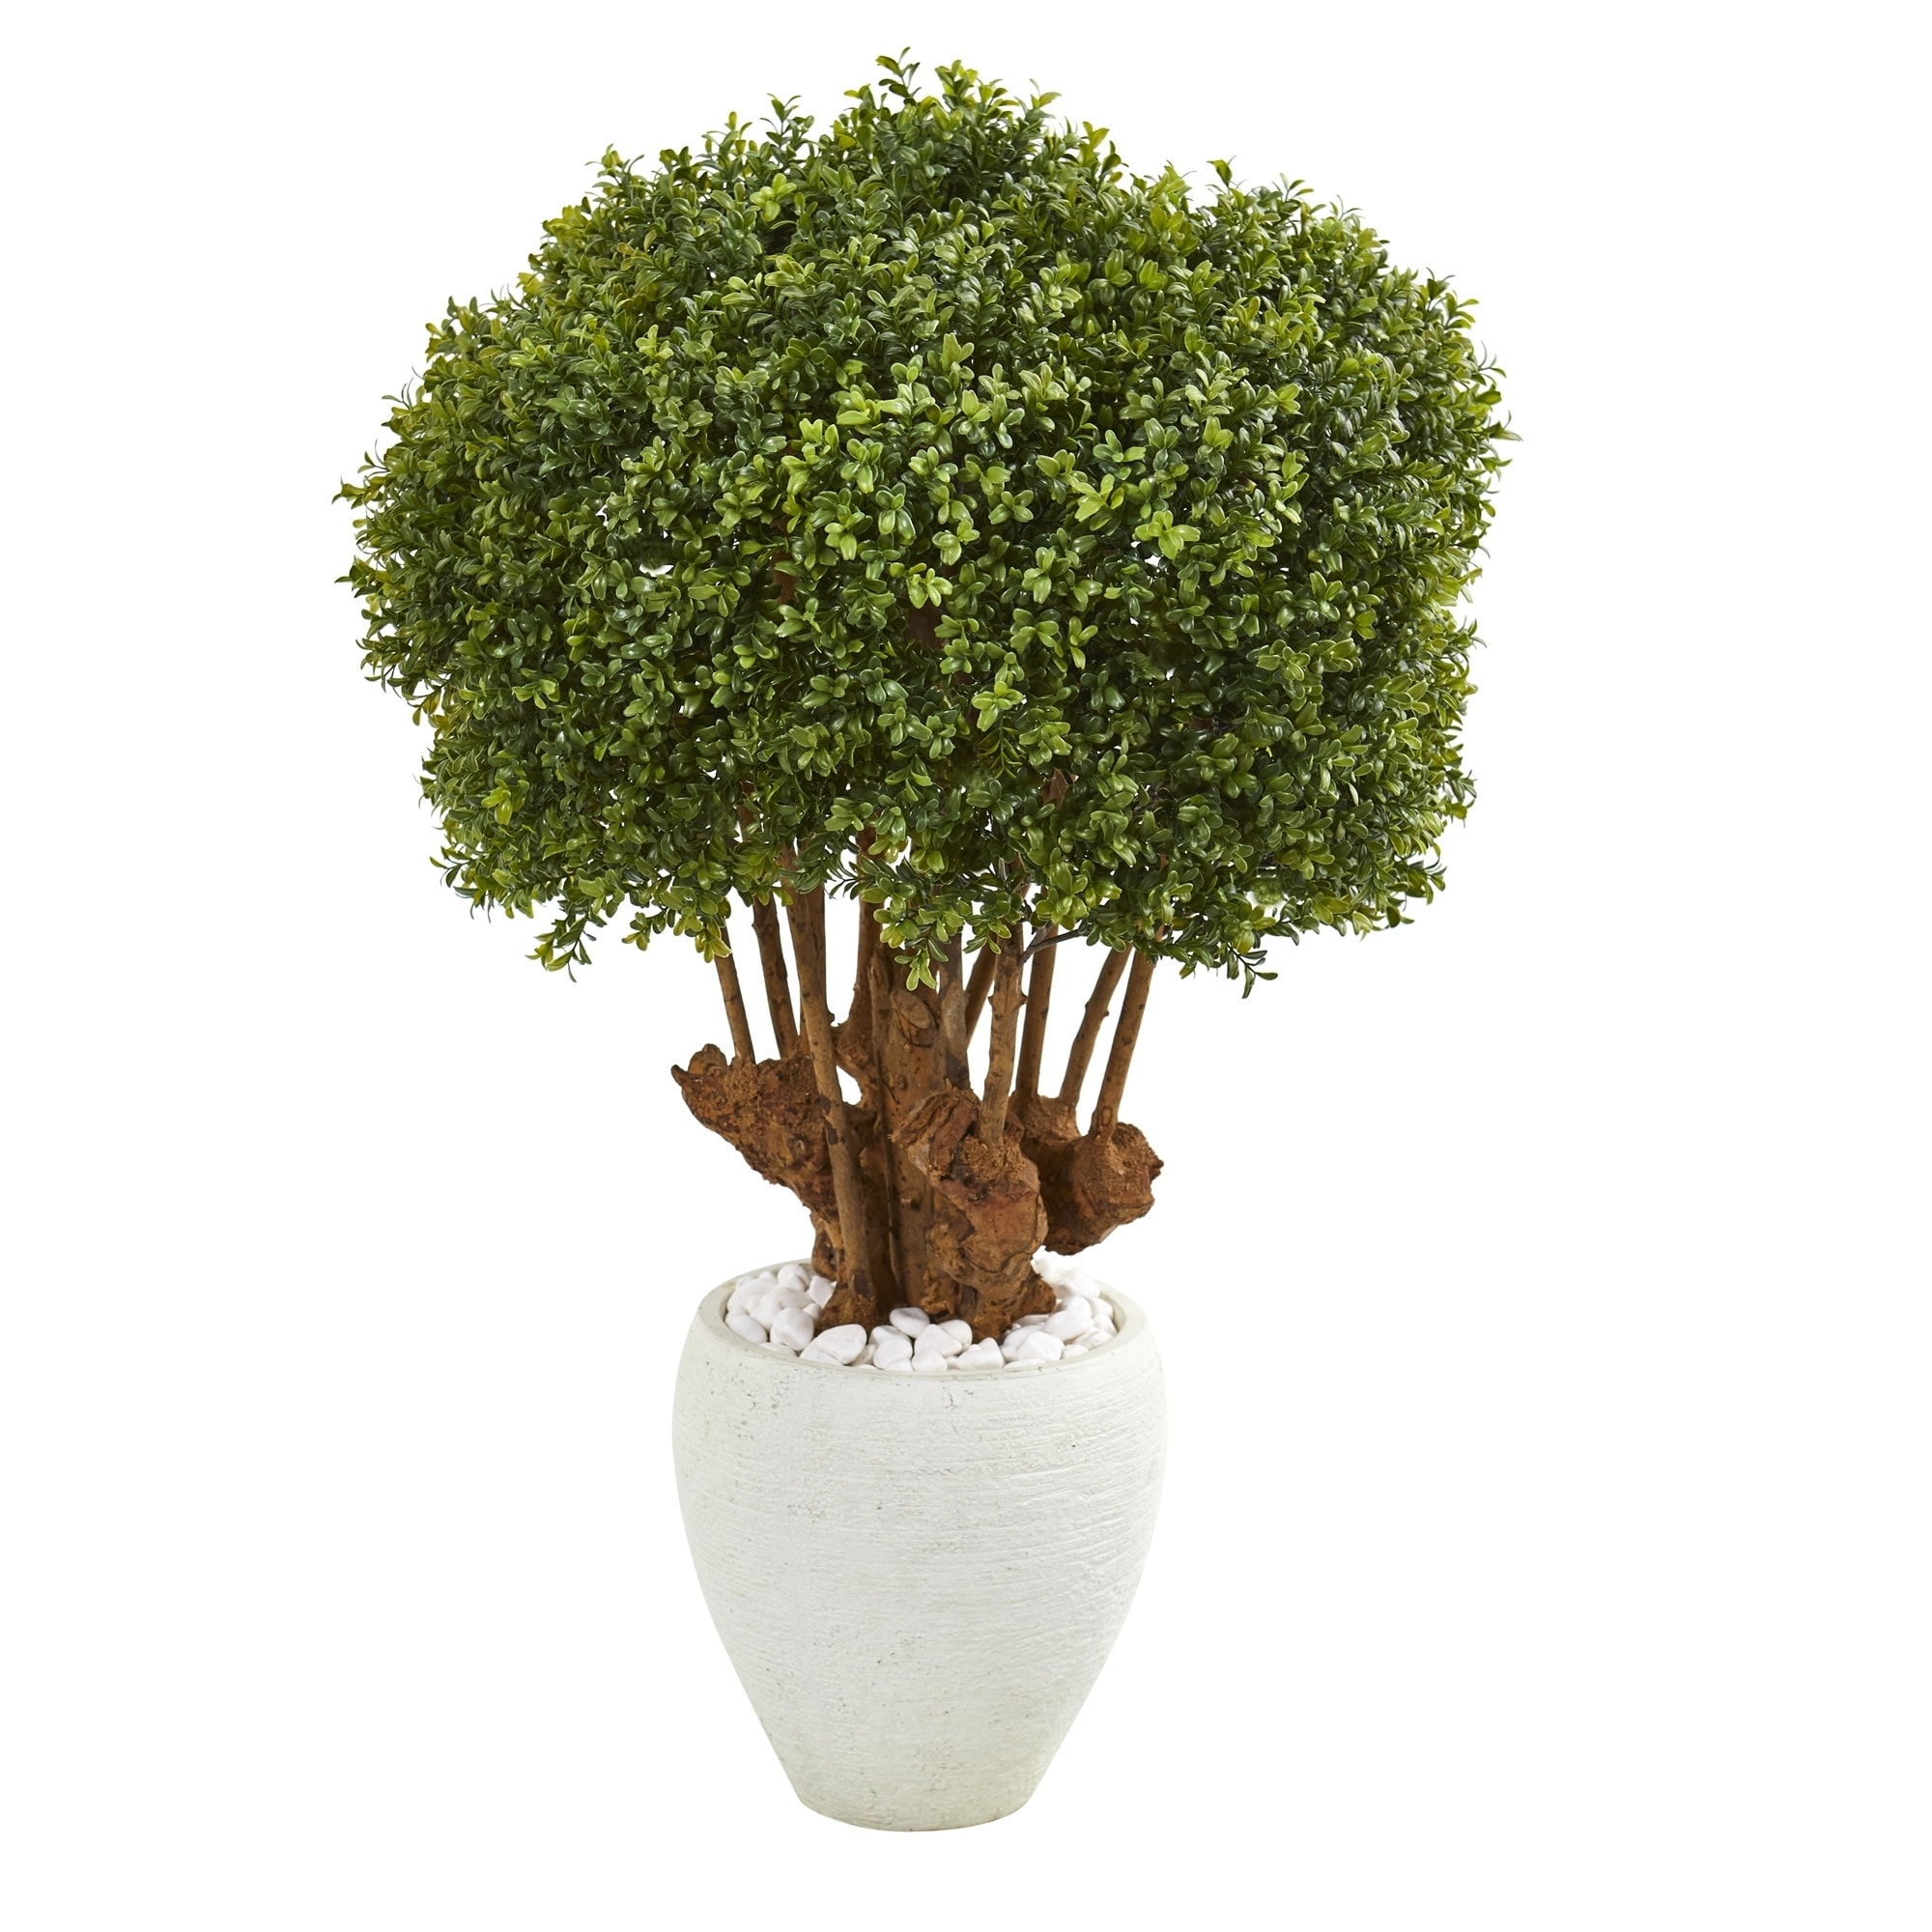 41 Boxwood Artificial Topiary Tree in White Planter (Indoor/Outdoor)